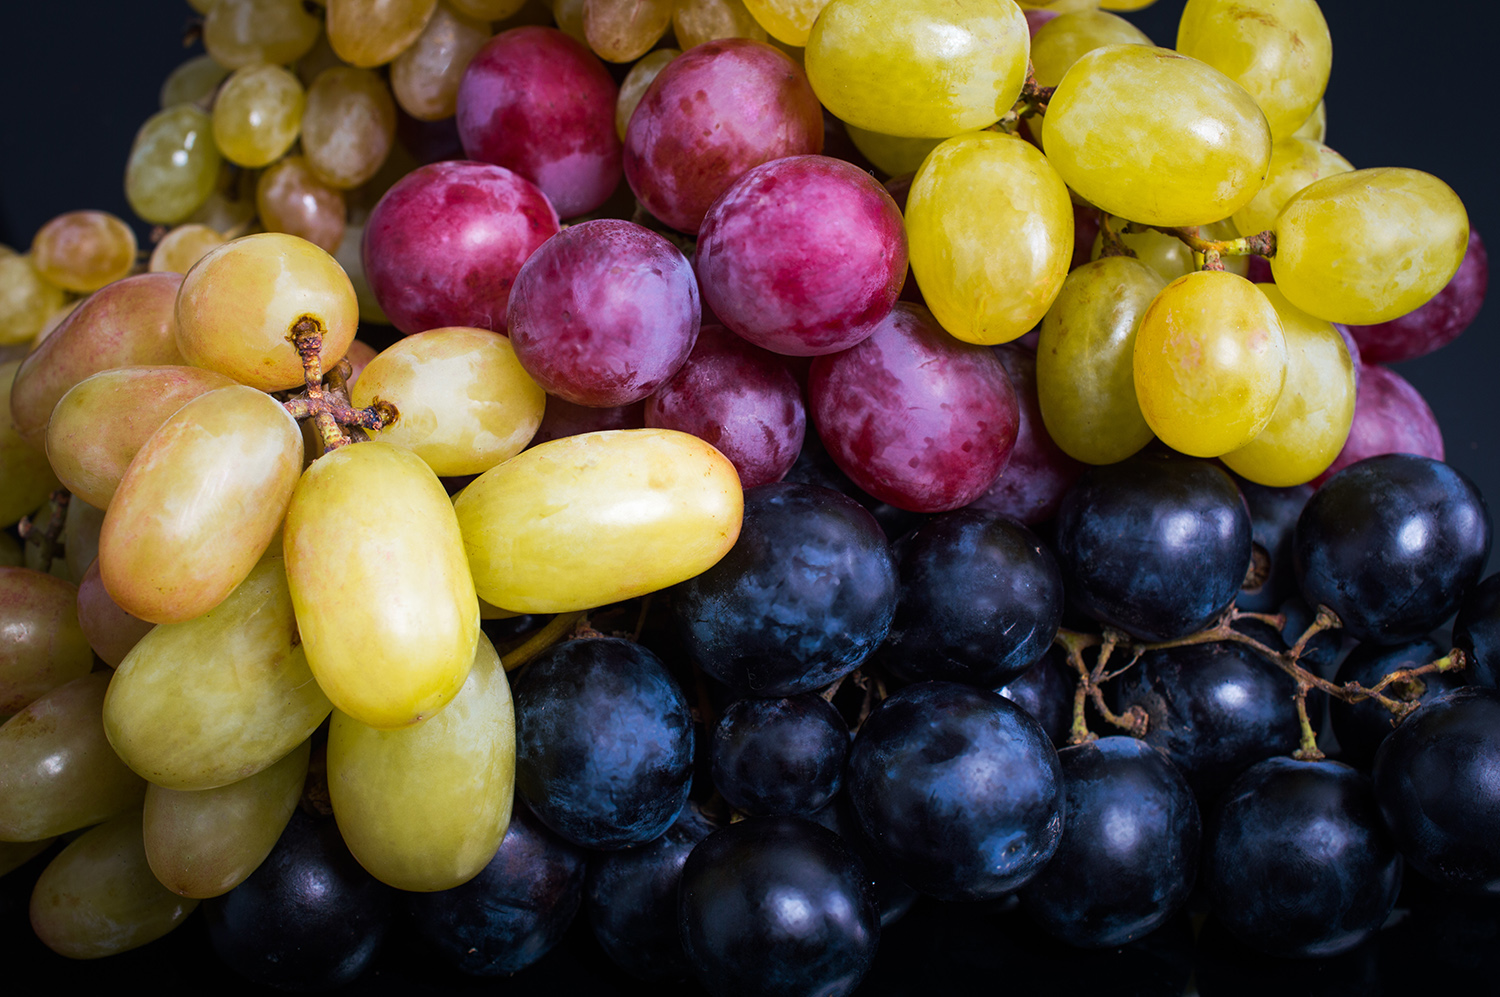 Grapes of all kinds have been found to be toxic to dogs